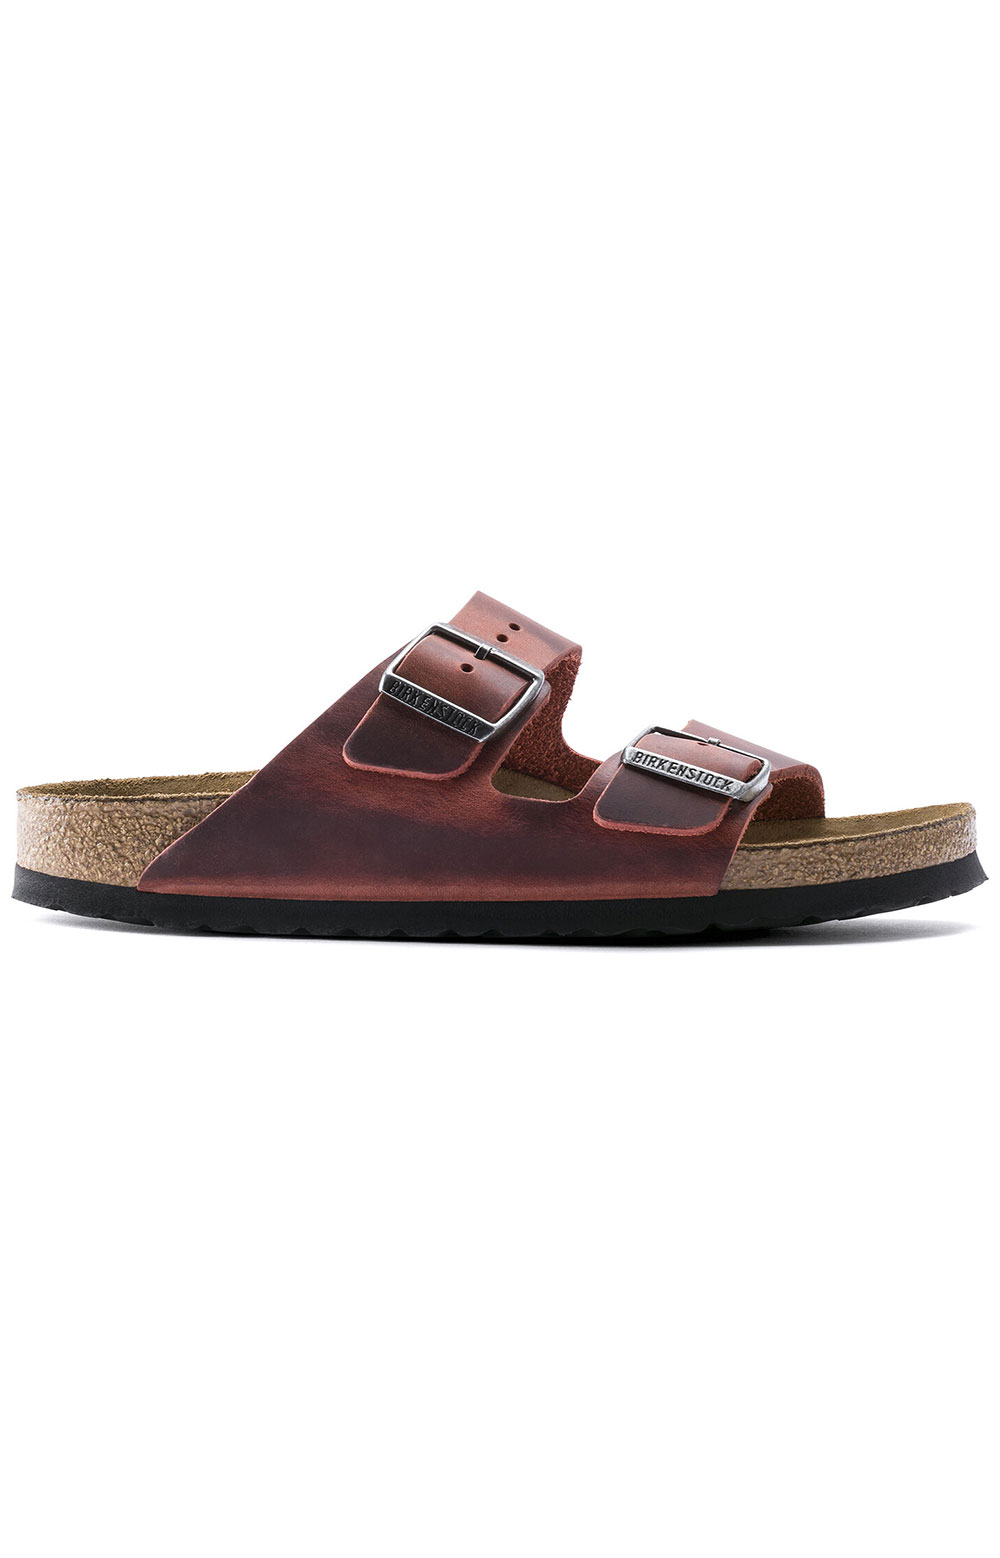 (1015545) Arizona Soft Footbed Sandals - Earth Red 4